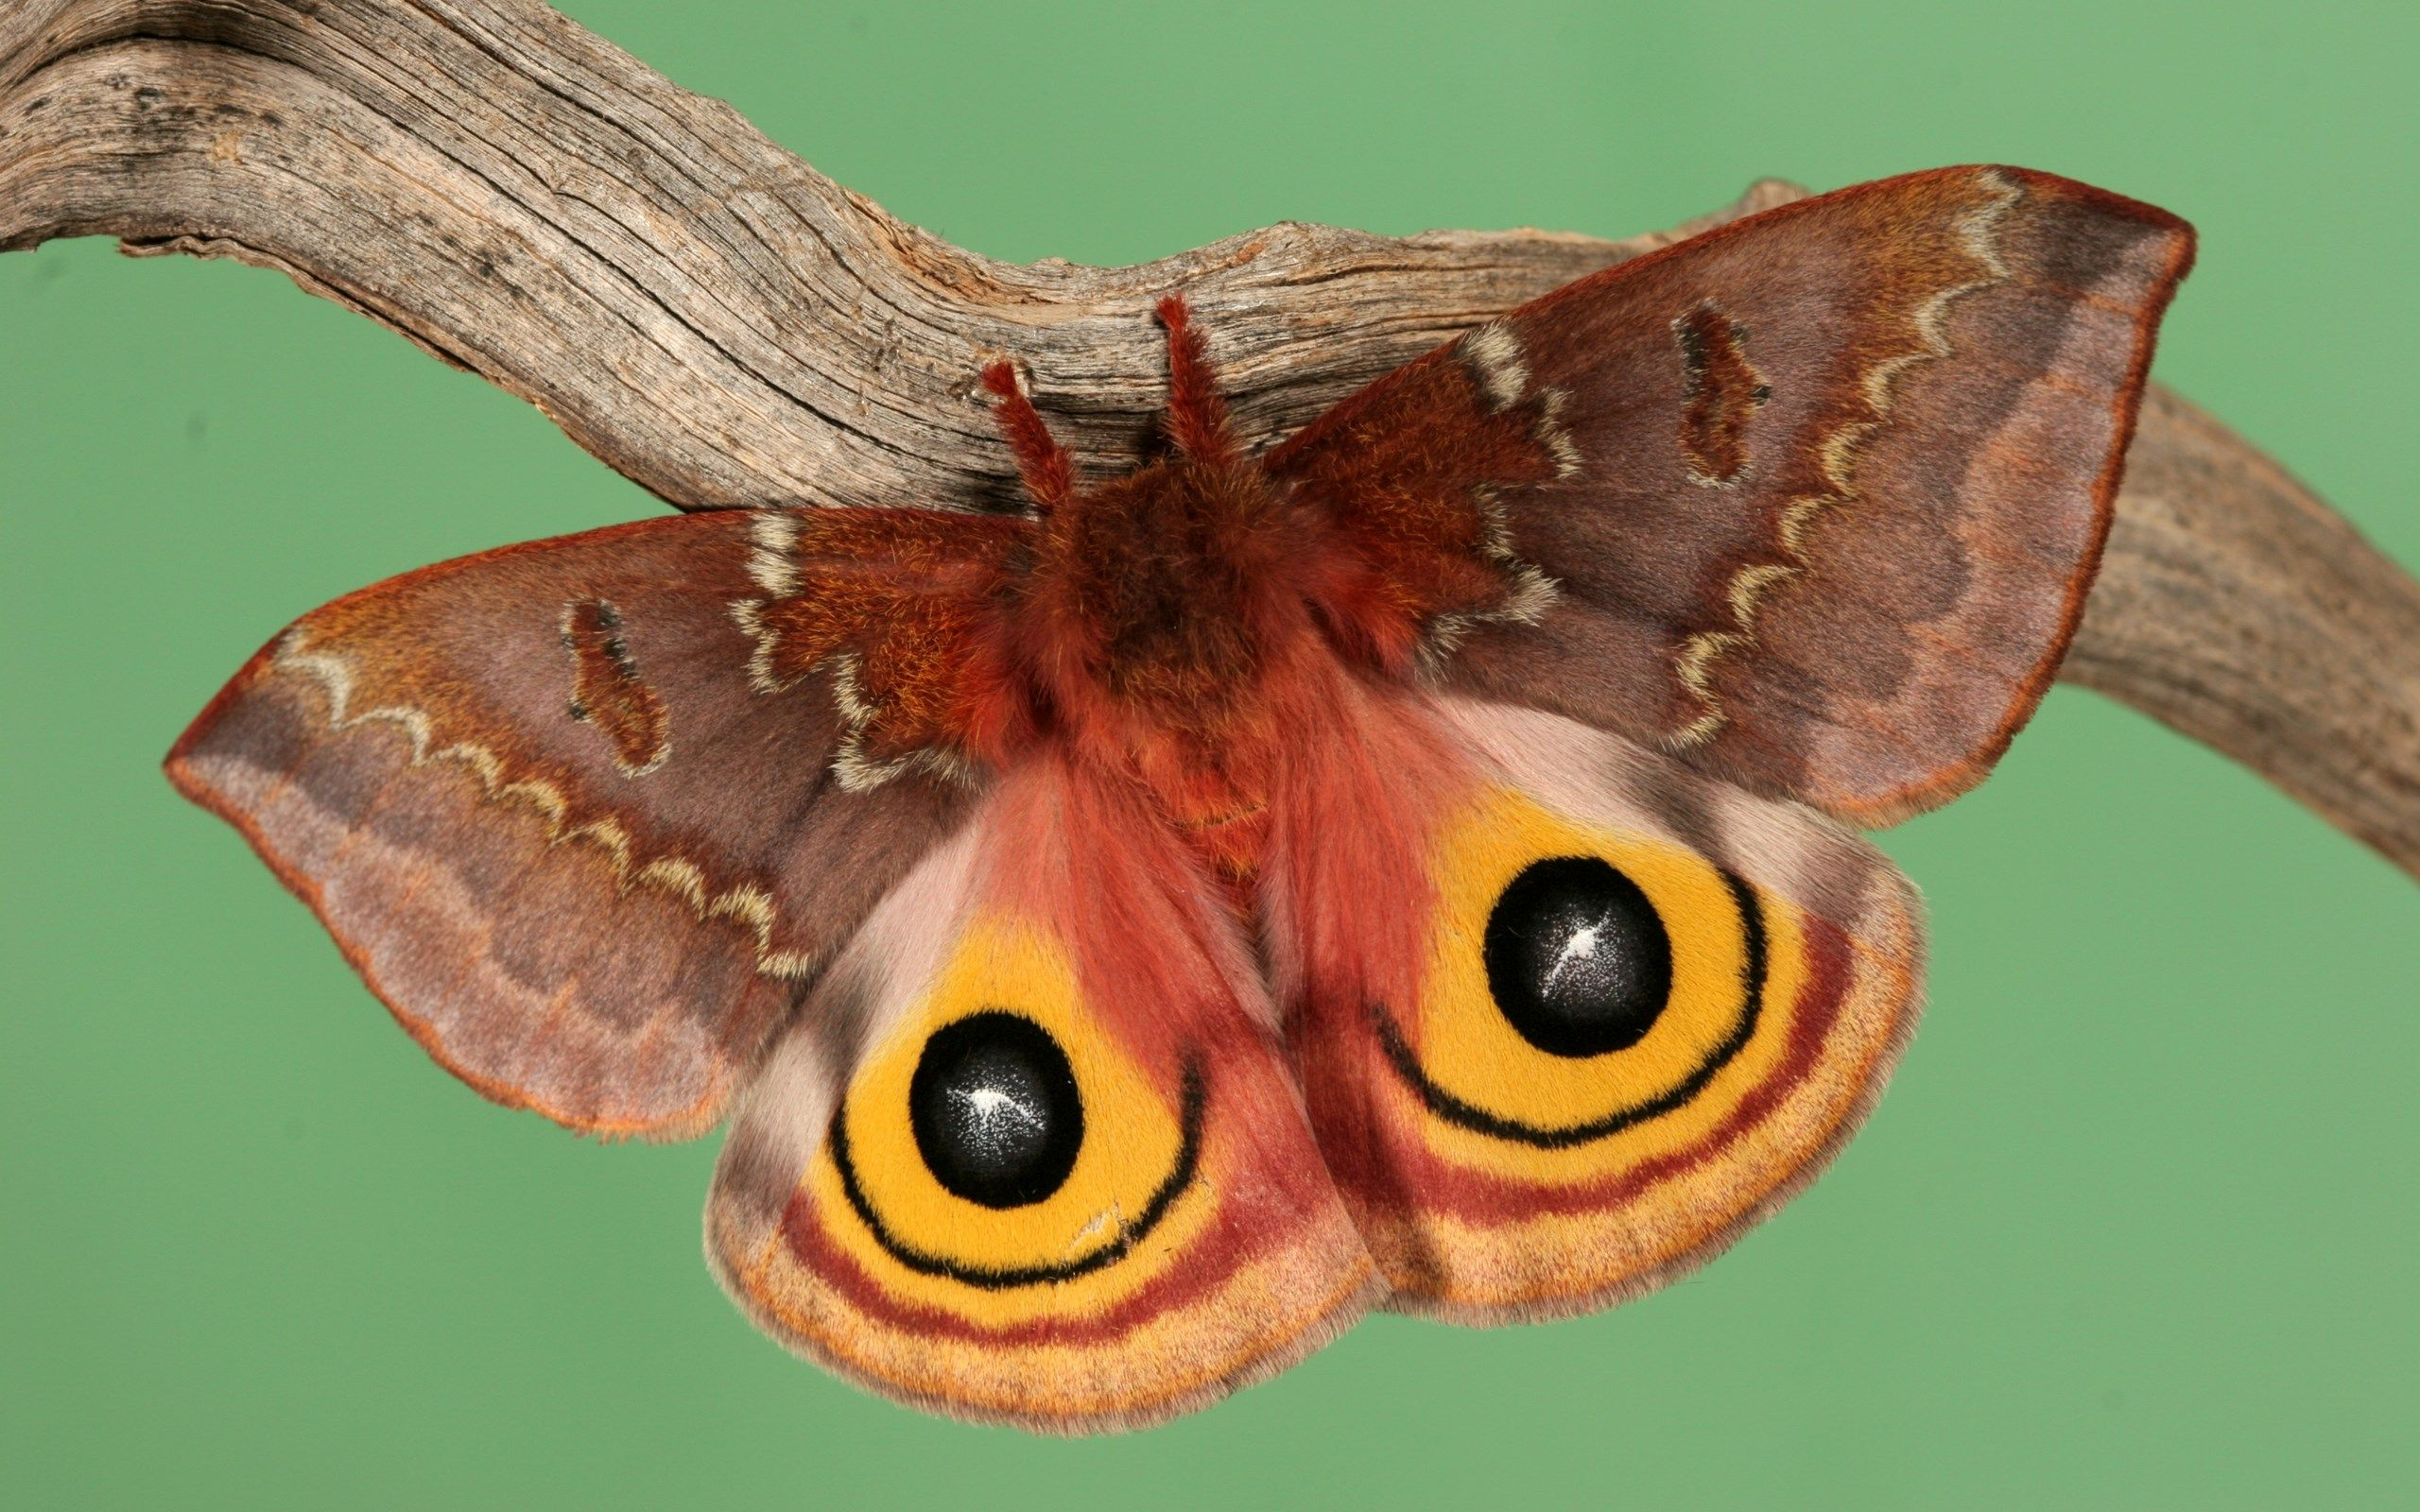 2560x1600 2560x1600 px Desktop Backgrounds - moth pic by Gable Chester for ...